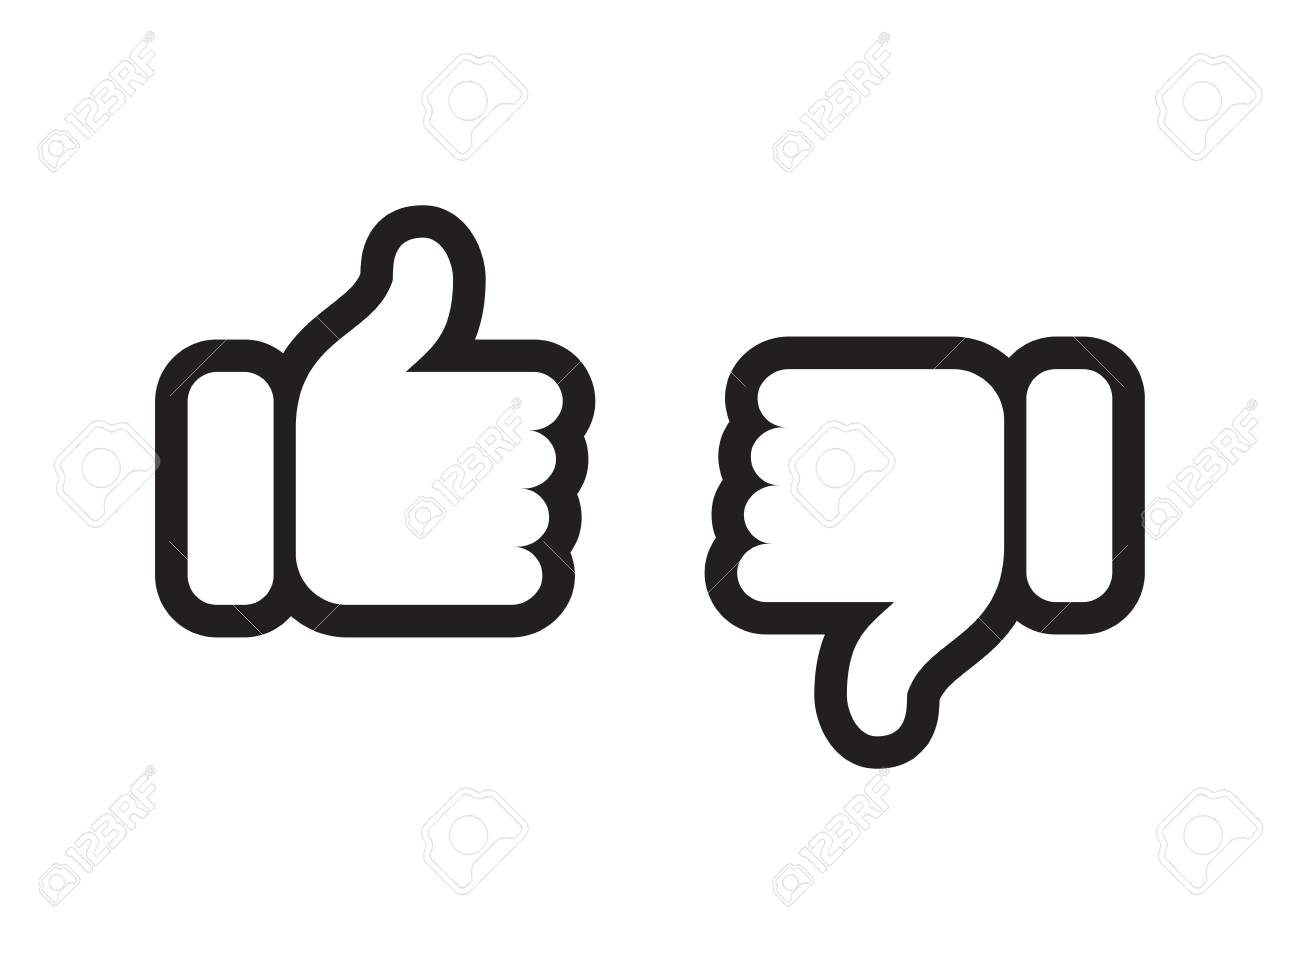 Thumb up and down vector web icons. Vector thin line symbols for positive or negative feedback, like and unlike or dislike review signs - 108090612